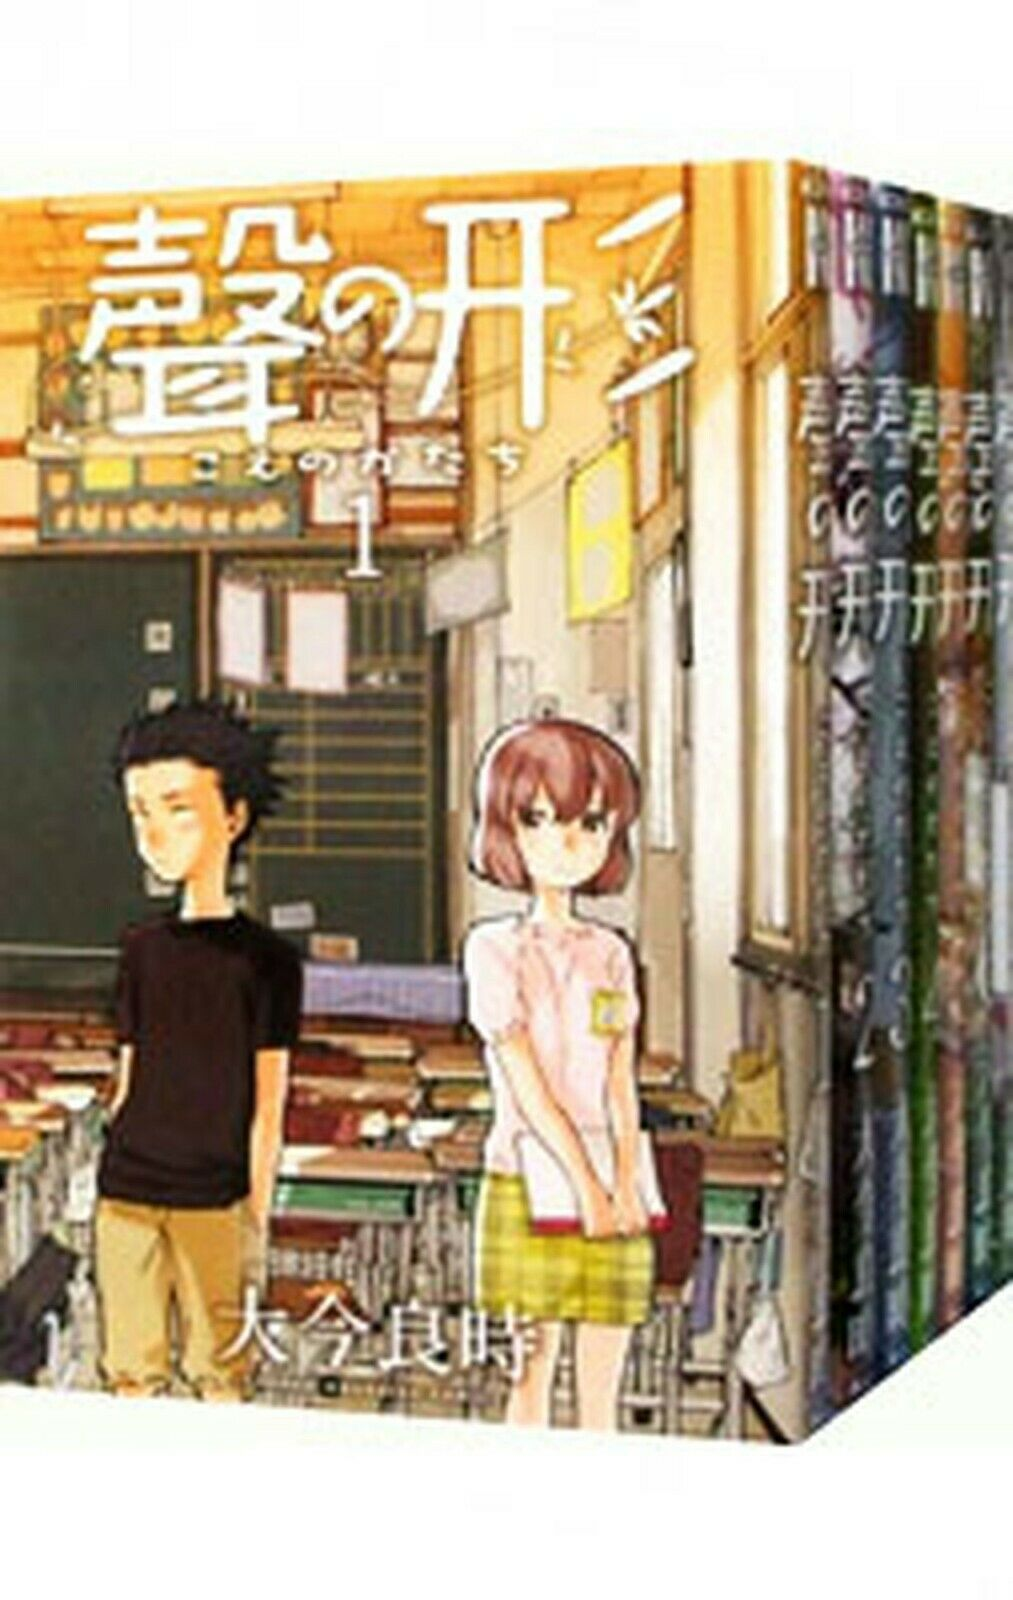 Koe No Katachi A Silent Voice Volume 6 Vol 6 Manga Magazine Comics Book Japan For Sale Online Ebay